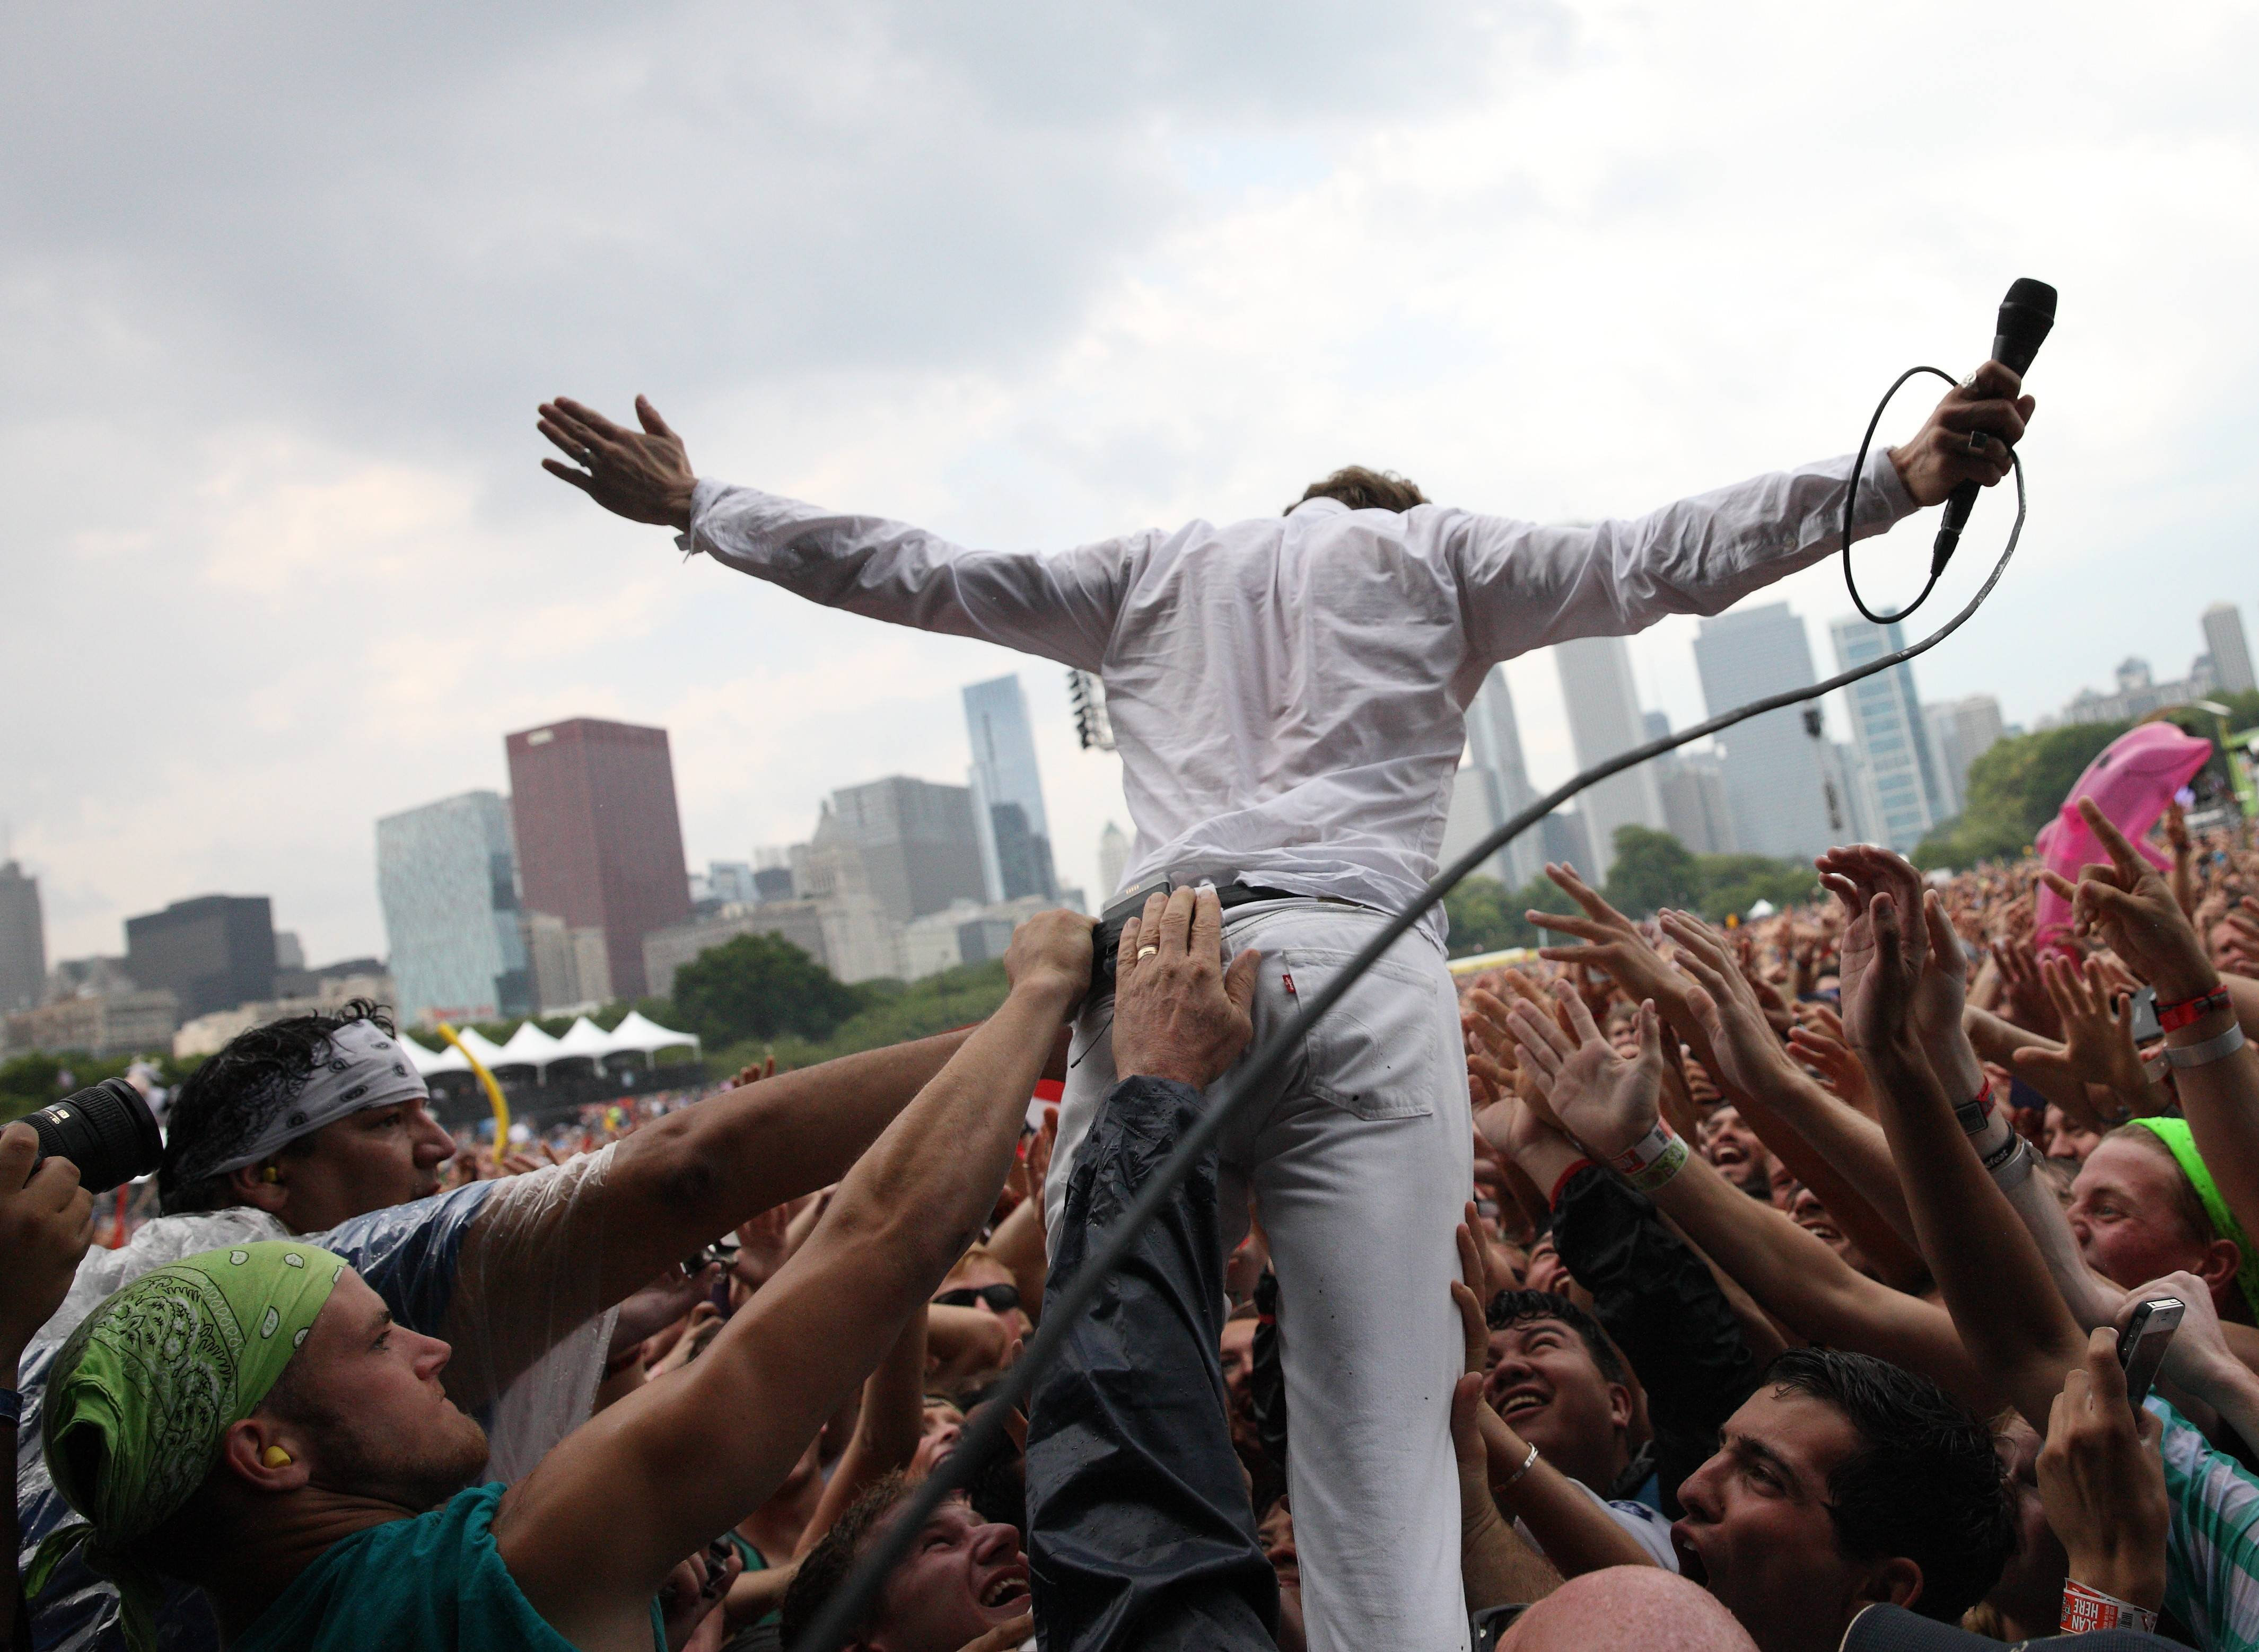 Matt Shultz of Cage The Elephant has a little fun with crowd Sunday at Lollapalooza in Chicago's Grant Park.